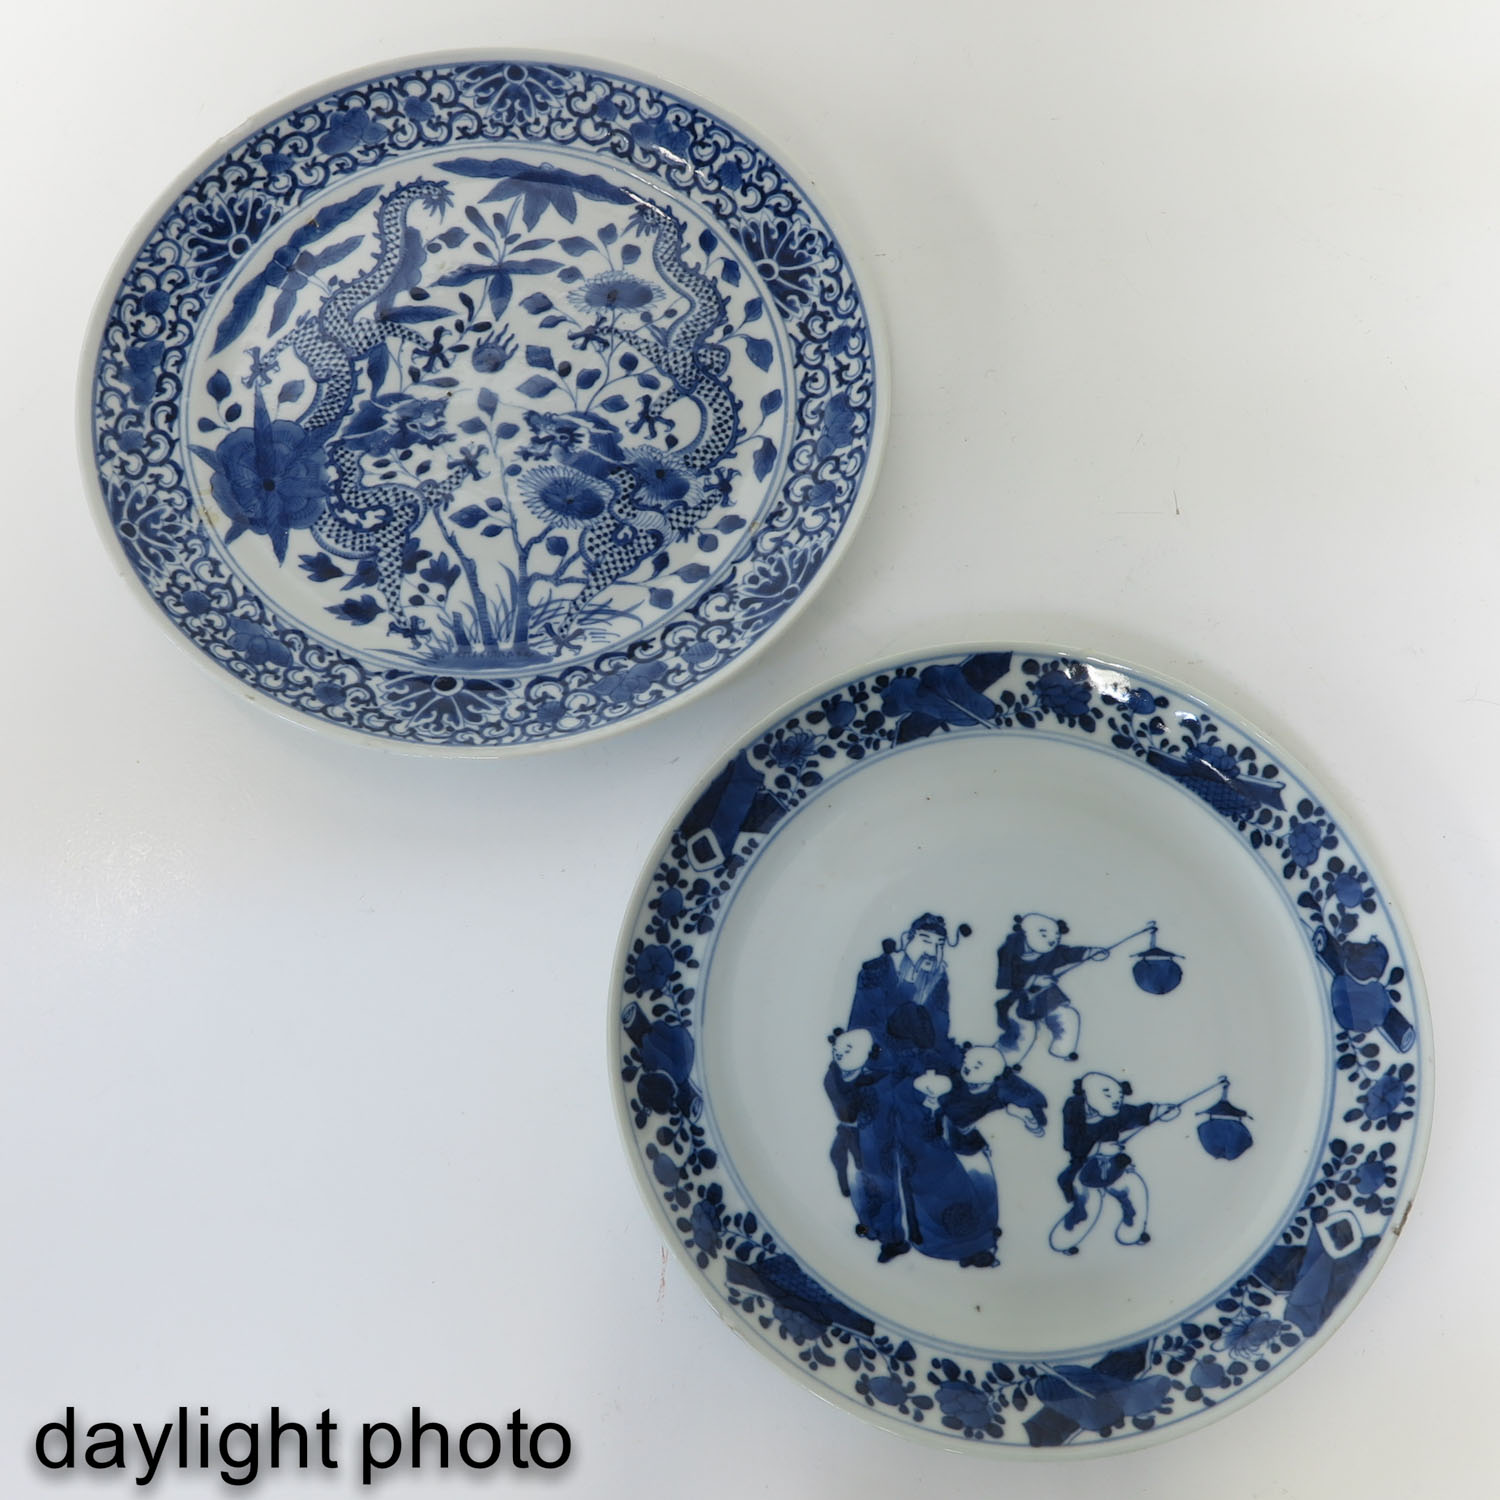 A Lot of 2 Blue and White Plates - Image 7 of 10